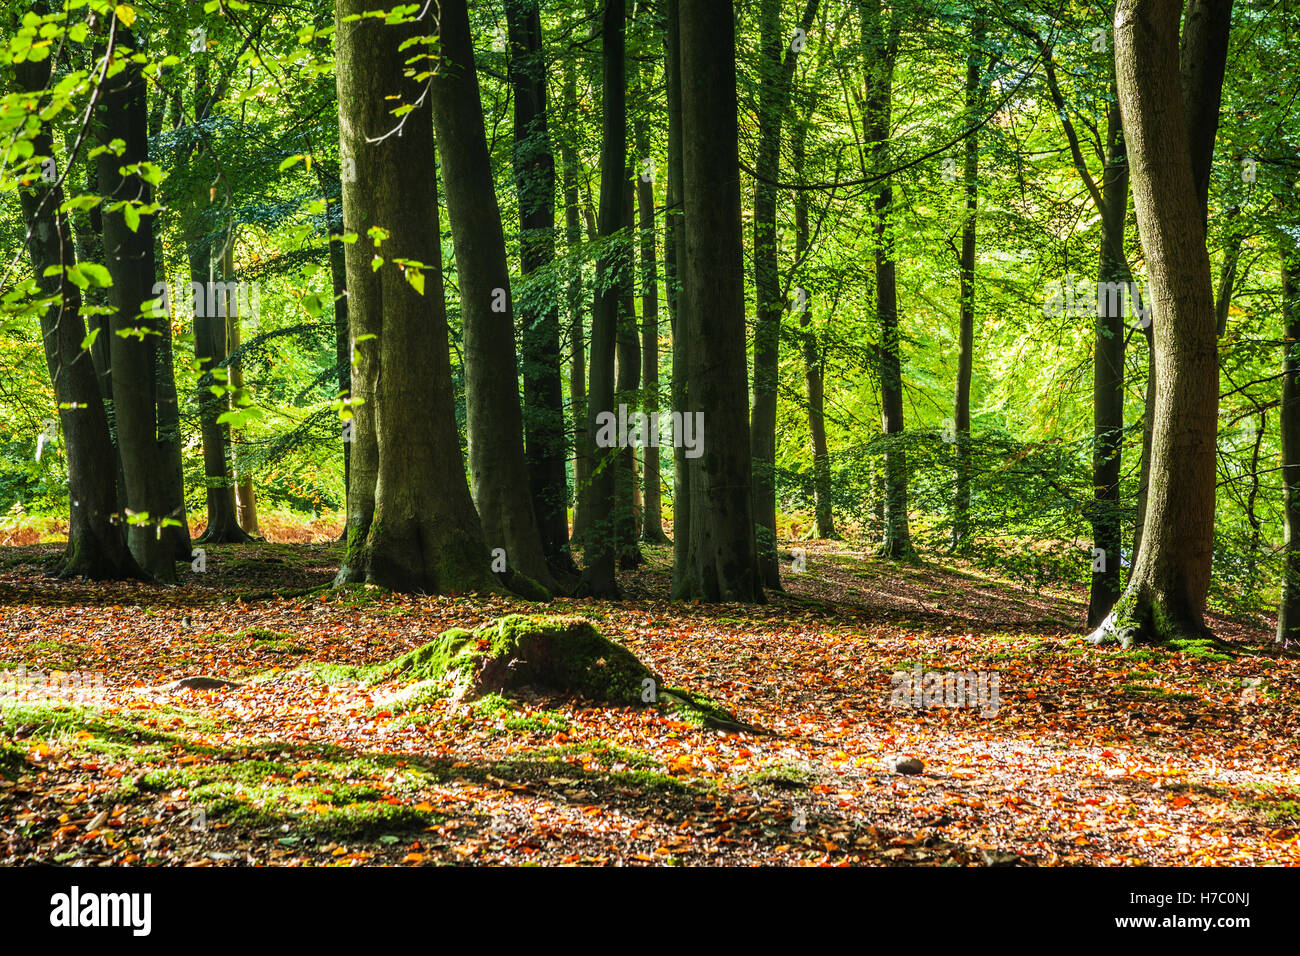 Dappled sunlight through early autumn trees in the Forest of Dean, Gloucestershire. - Stock Image